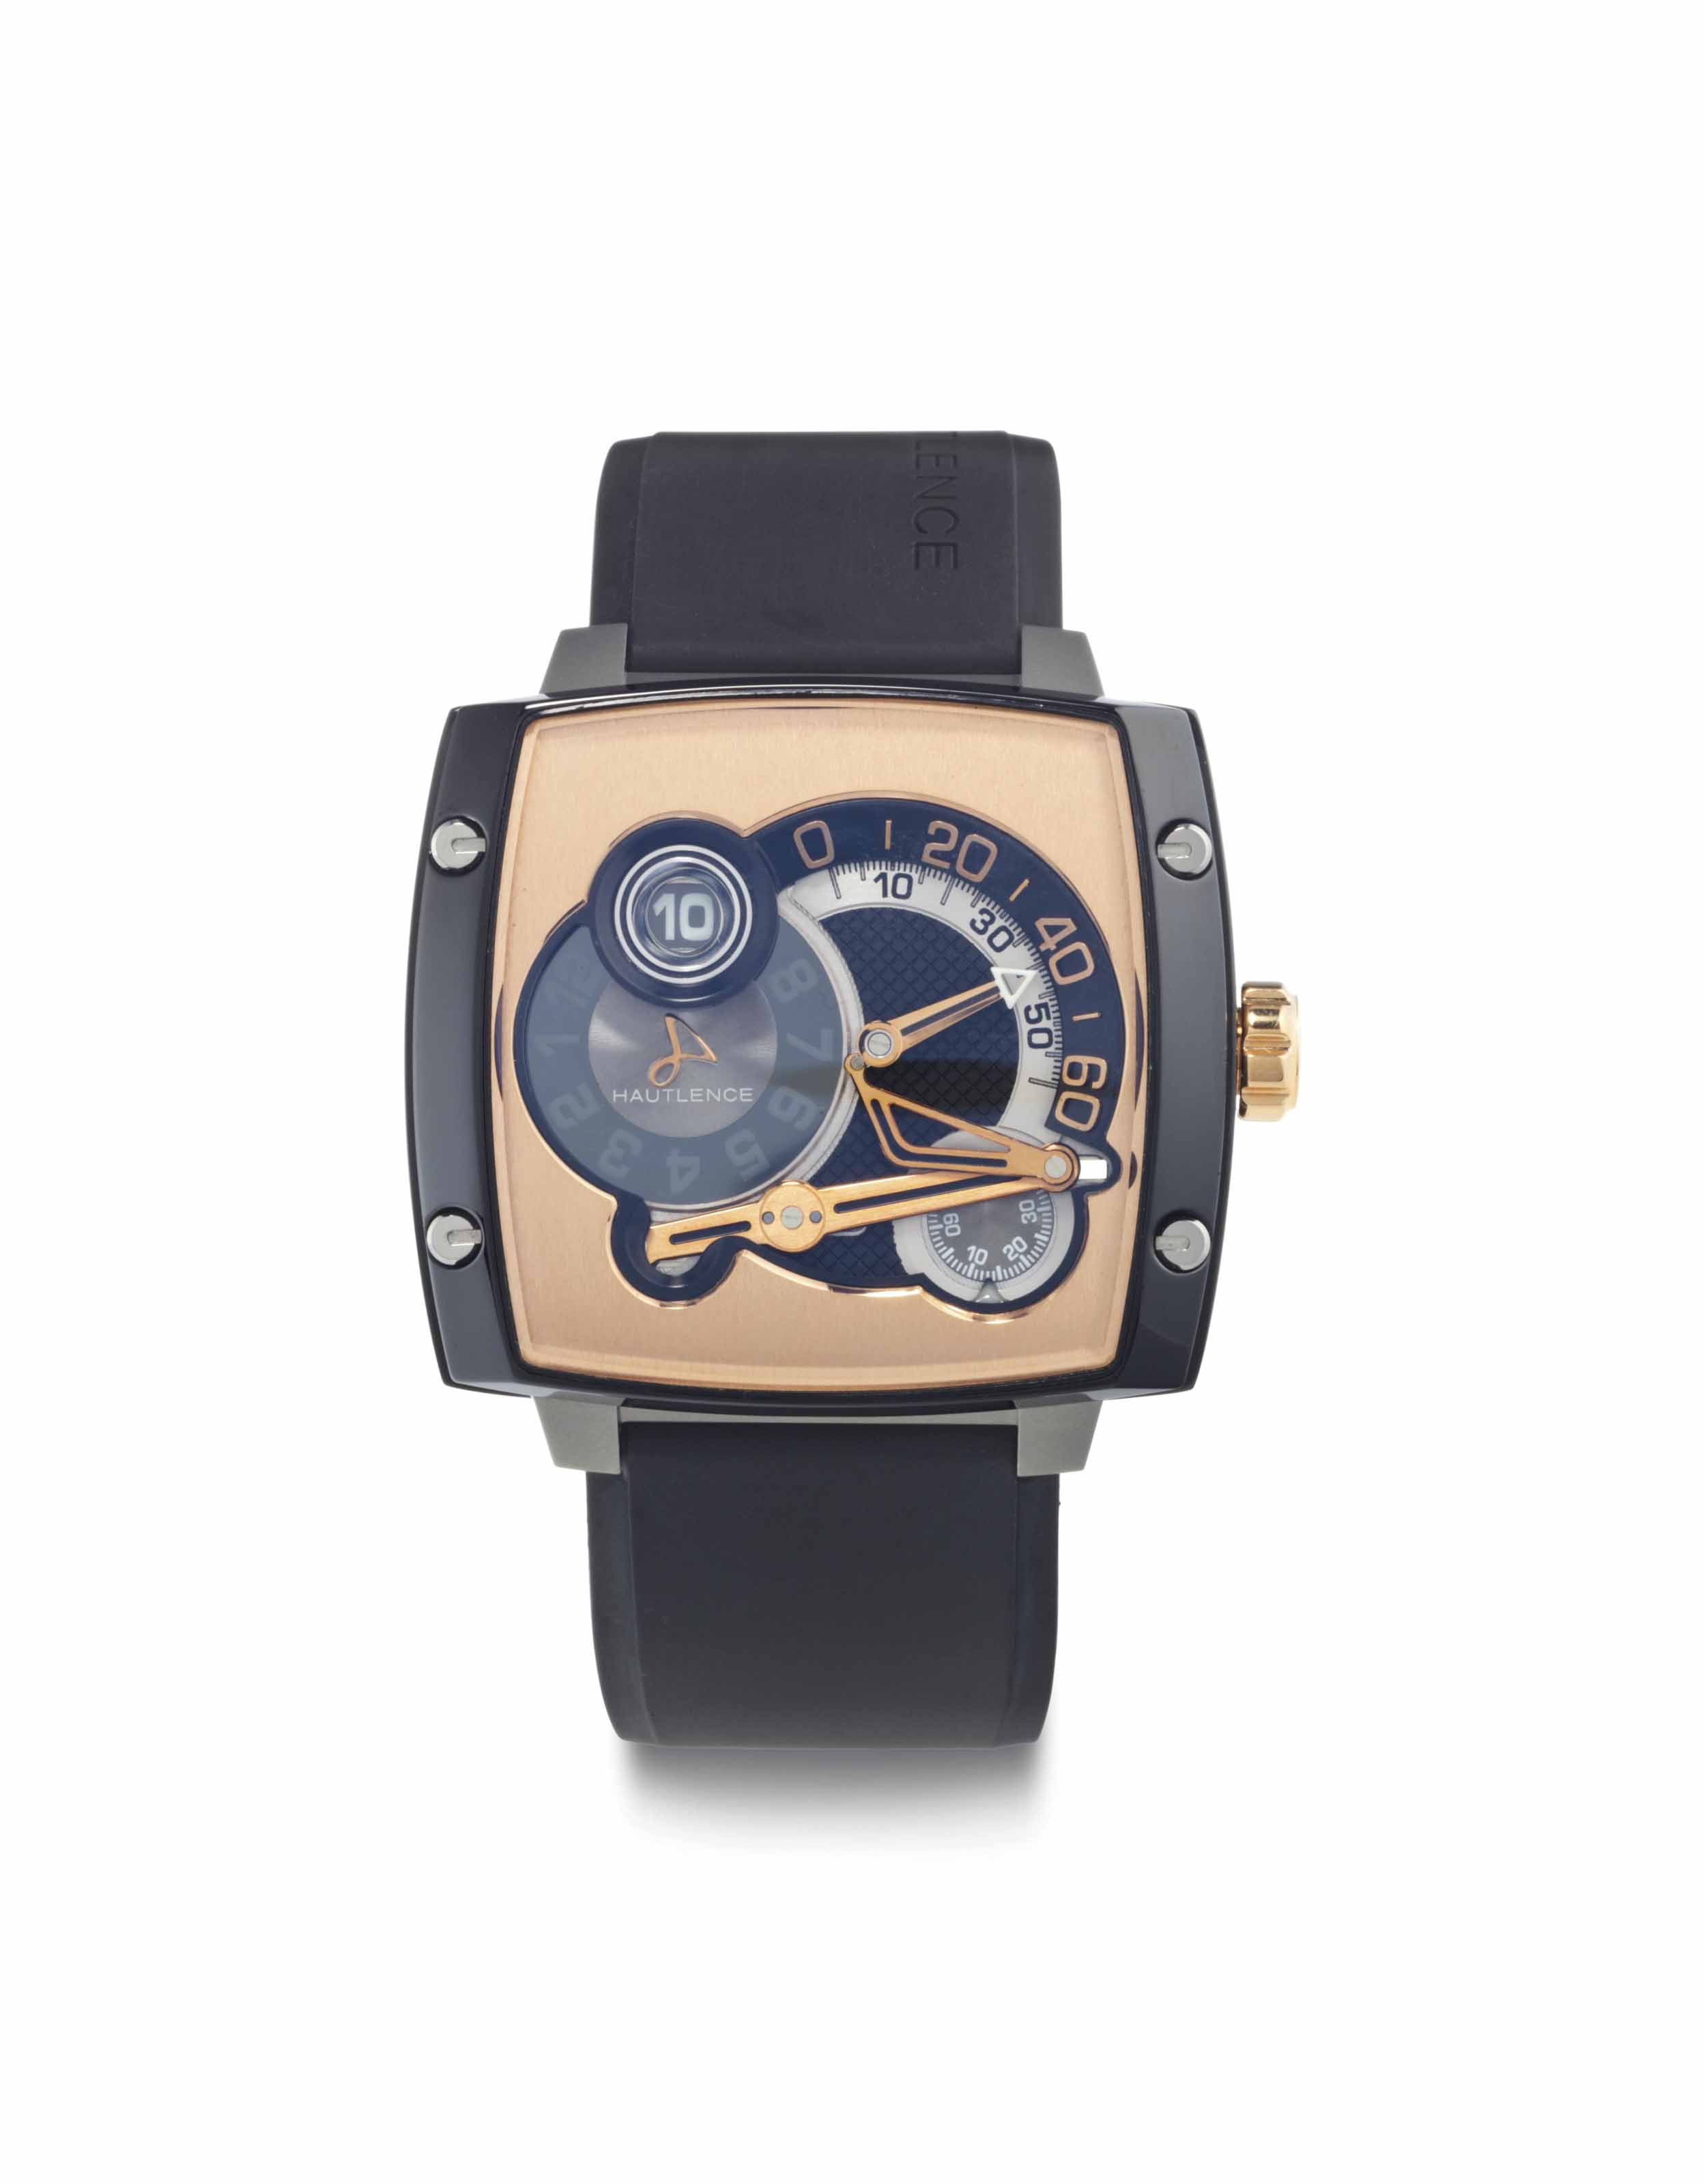 Hautlence. A Large, Rare and Unusual 18k Pink Gold, Titanium and Black DLC-Coated Stainless Steel Limited Edition Cushion-Shaped Jump Hour Wristwatch with Retrograde Minutes